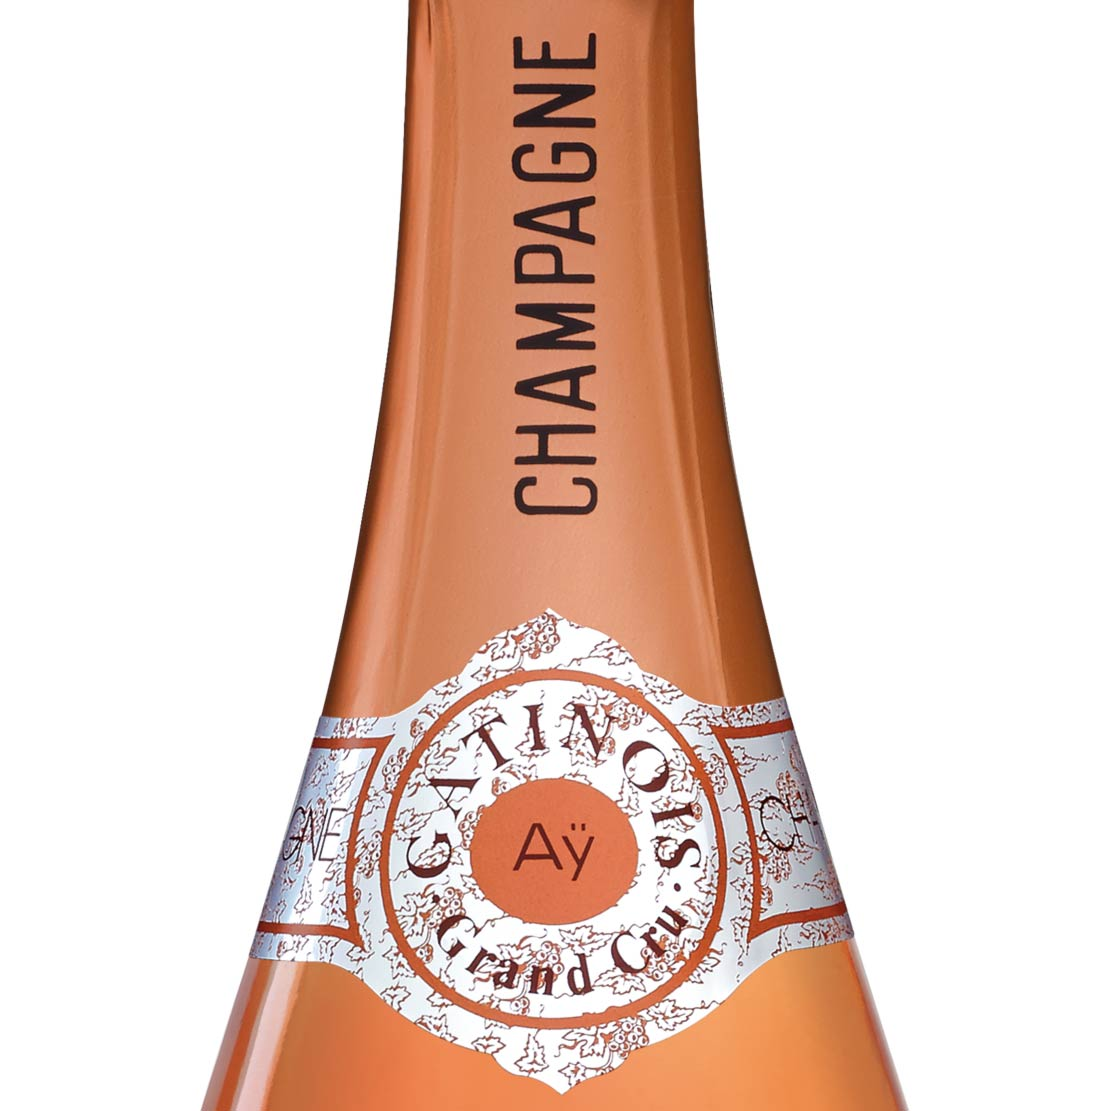 07-collerette-champagnegatinois-brut-rose